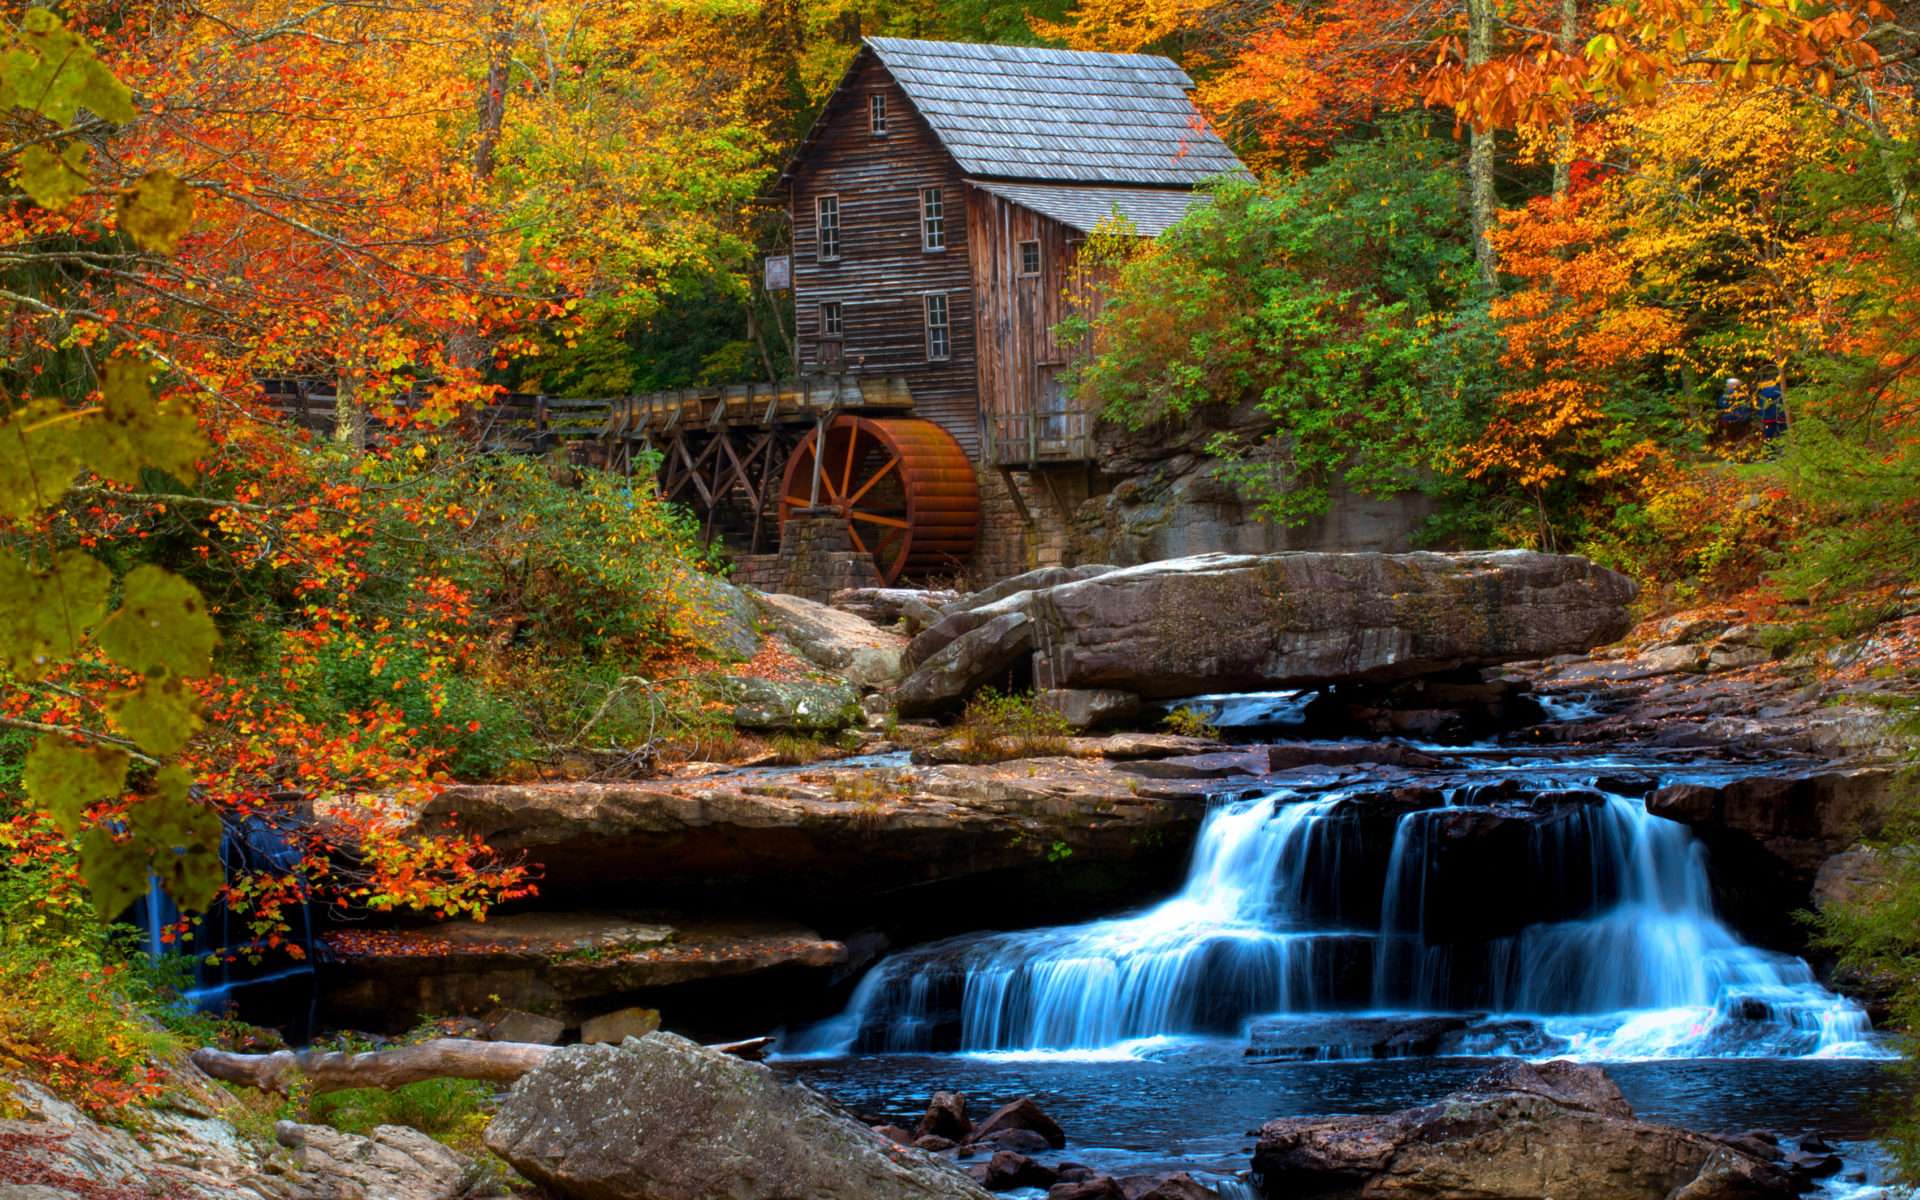 Fall Barn Wallpaper Old Wooden Mill Water Flow Rock Waterfall Hd Wallpaper For